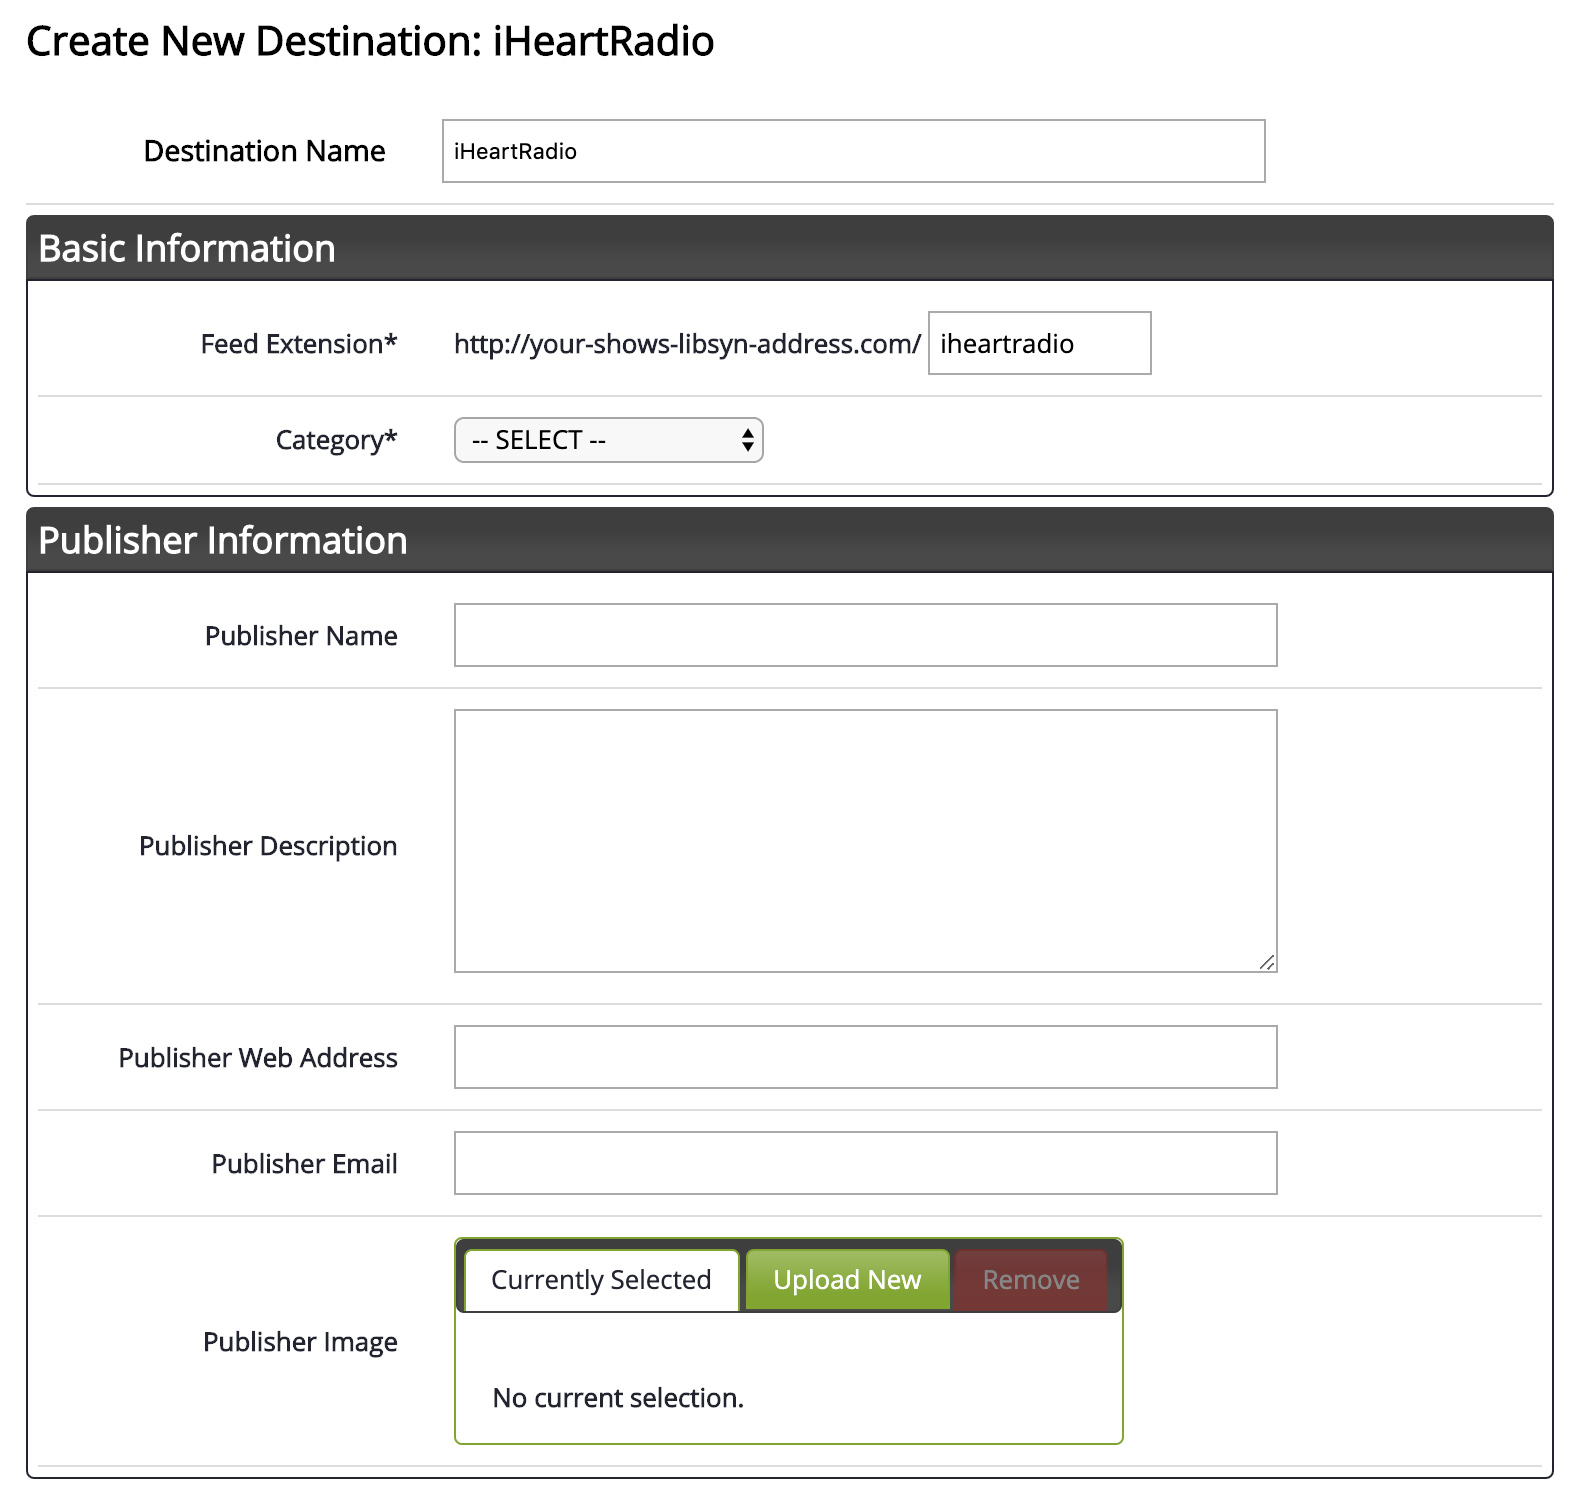 Configuration for iHeartRadio